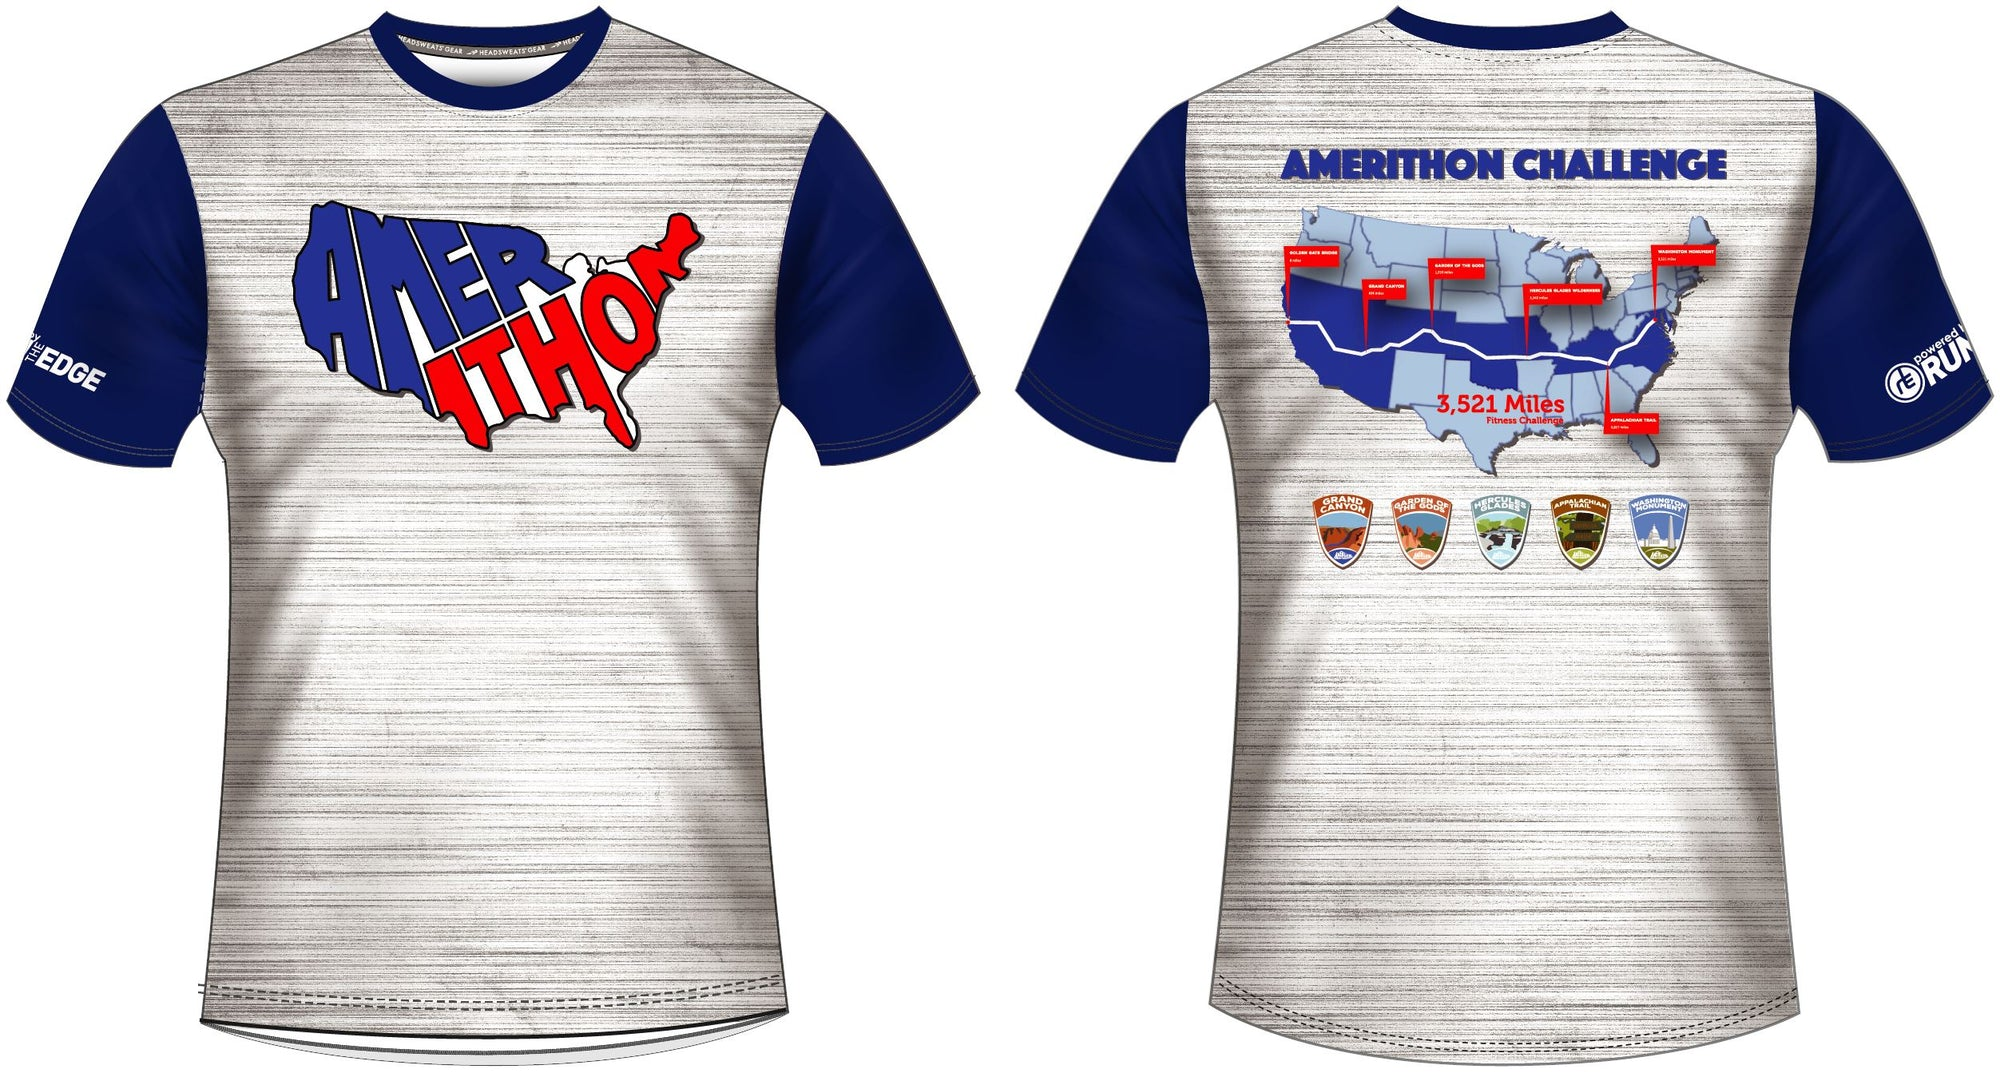 NEW Amerithon Sublimated Short Sleeve Tech-T Shirts Run The Edge